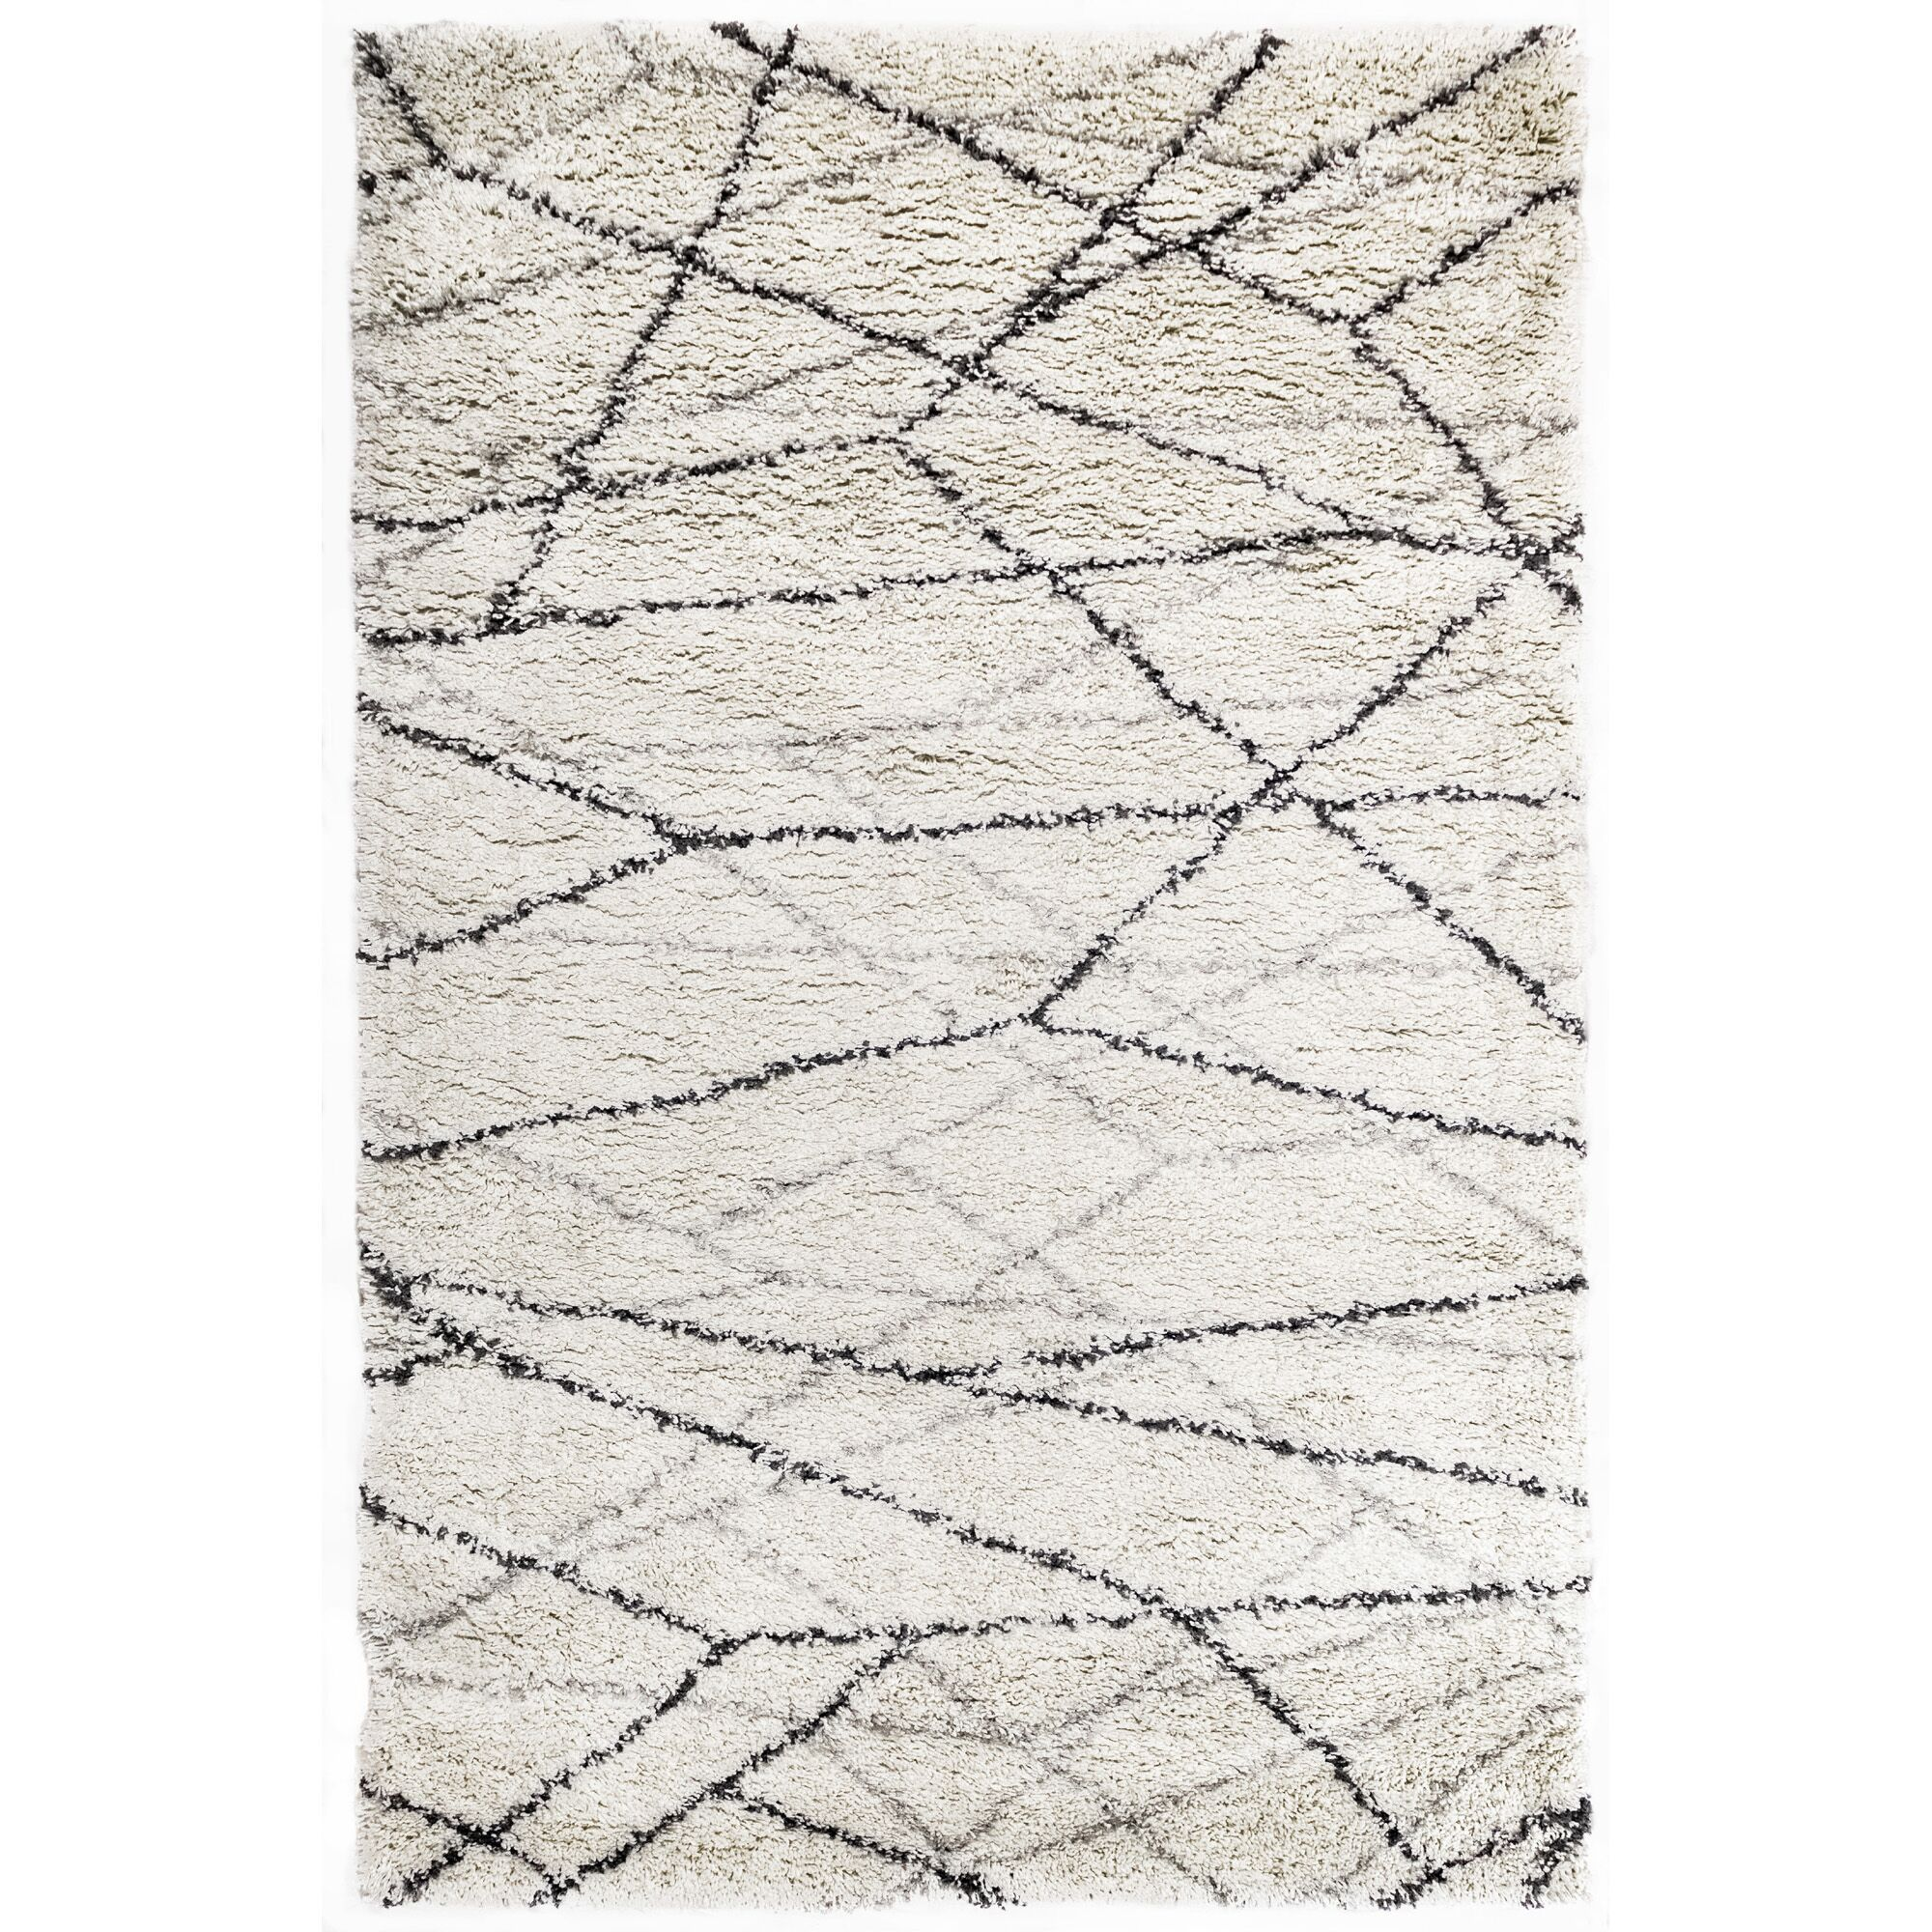 Bonham Beige Area Rug Size: Rectangle 4'10